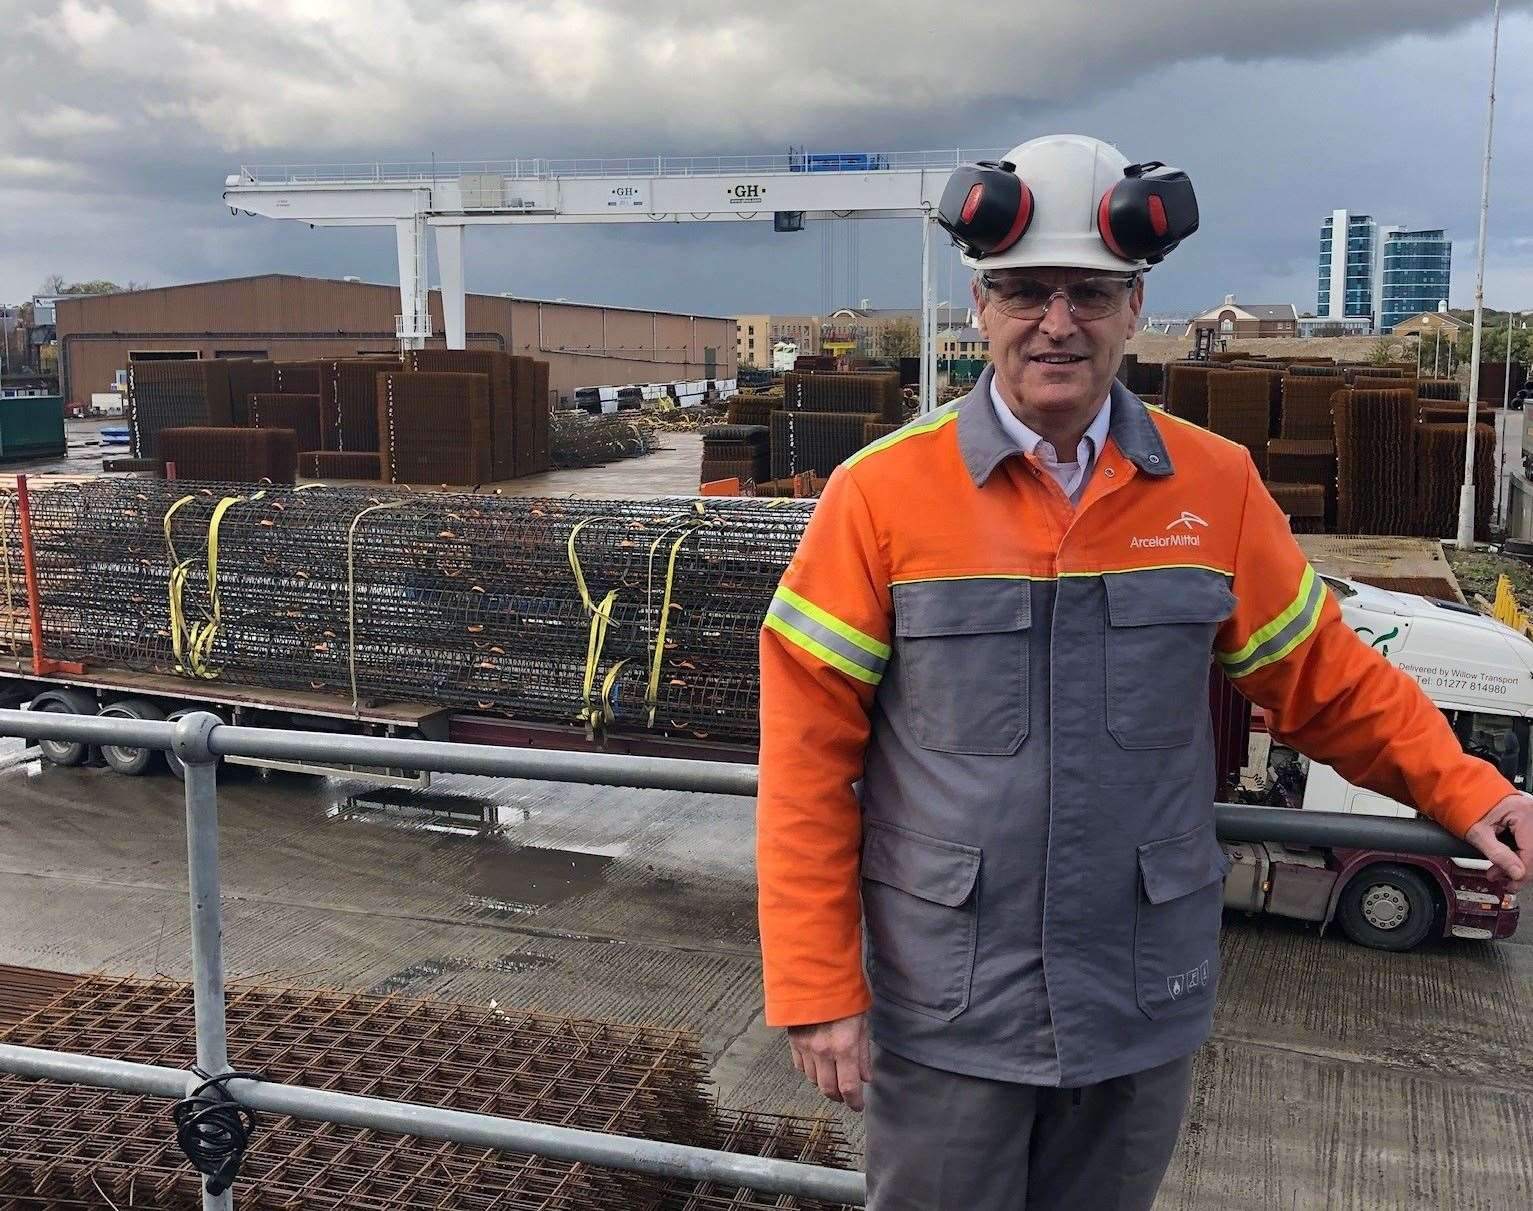 ArcelorMittal Kent Wire chief executive Phil Taylor, who is head of the Association of Chatham Docks Commercial Operators